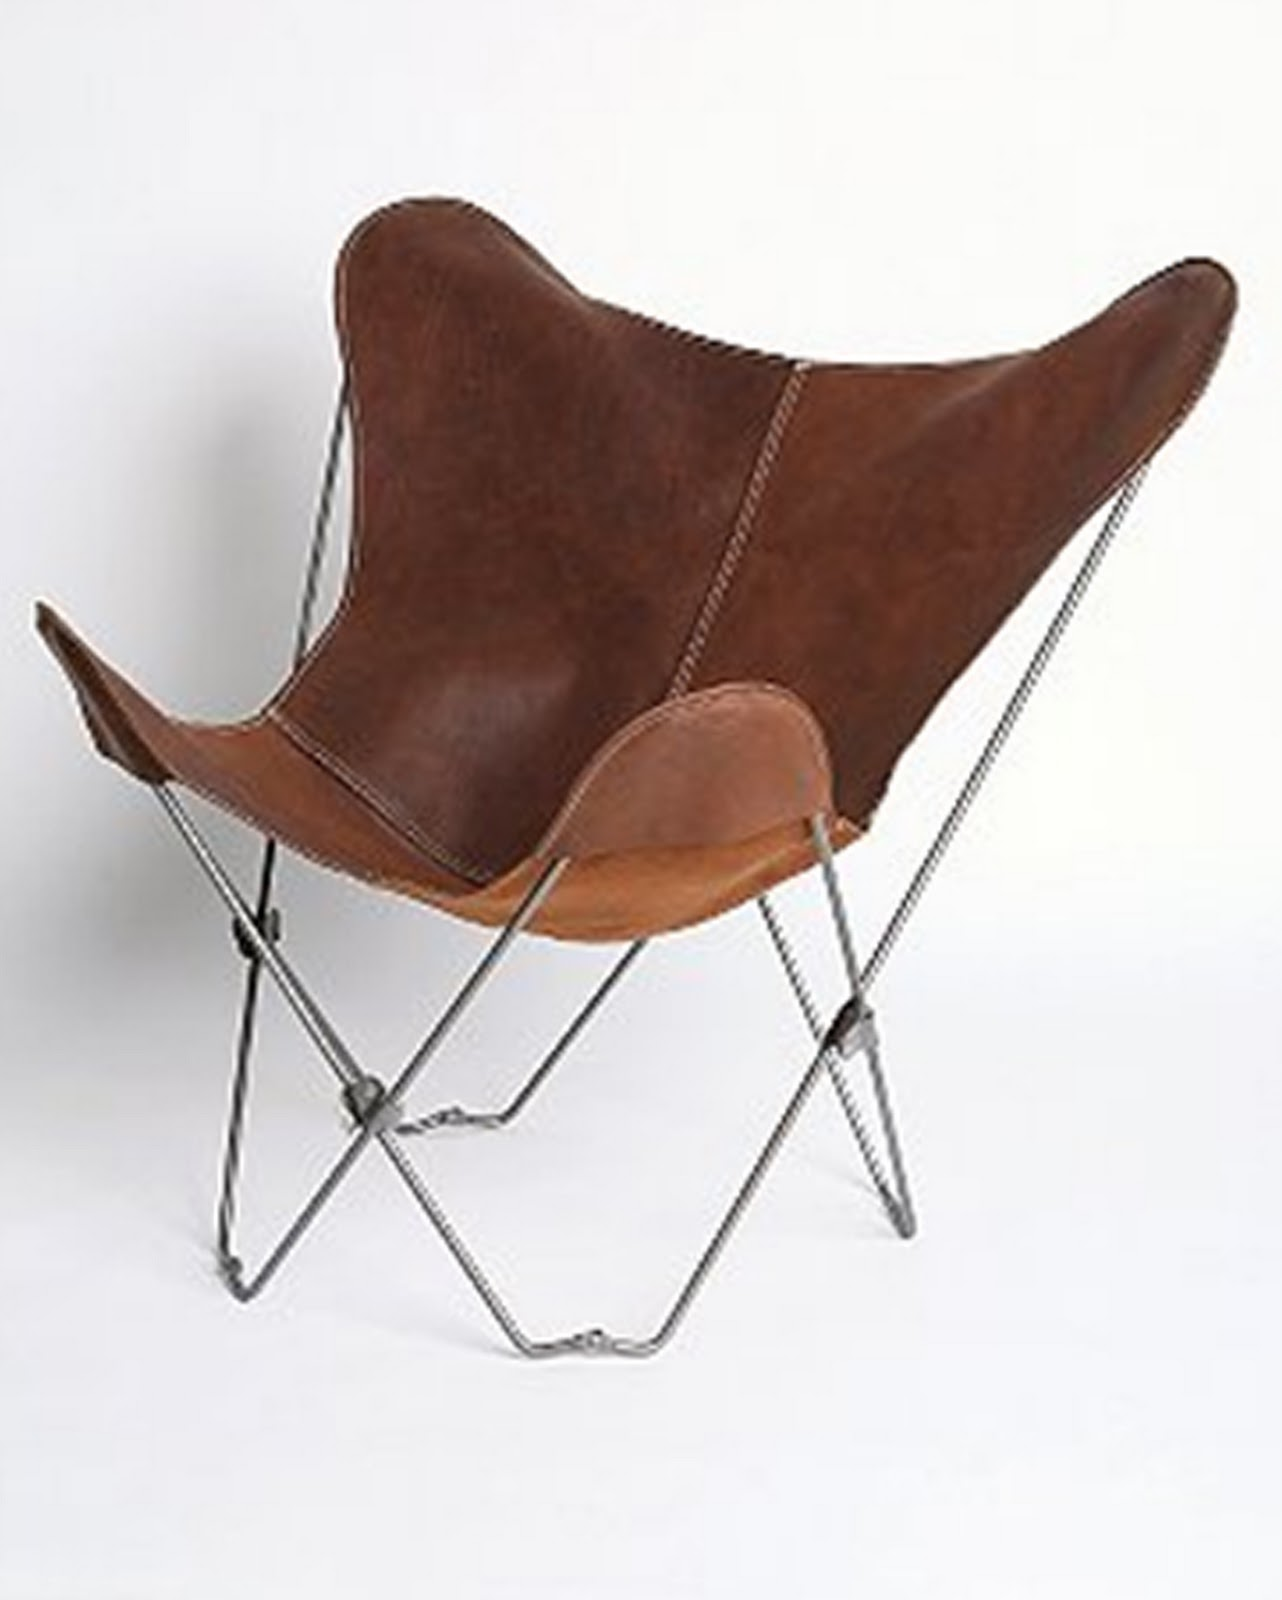 Brown Leather Butterfly Chair Rg The Shop Library Uo Lux Leather Butterfly Chair